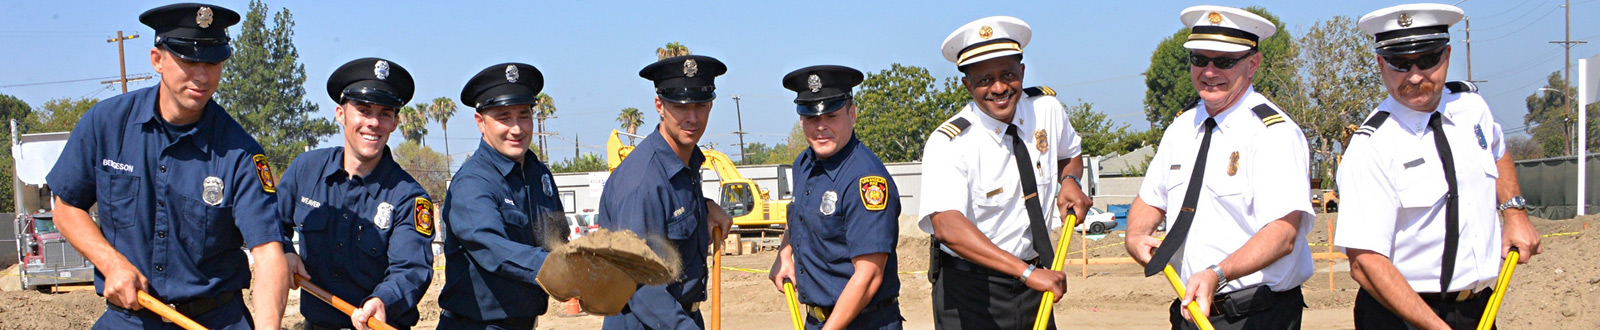 A group of LAFD men at a groundbreaking ceremony